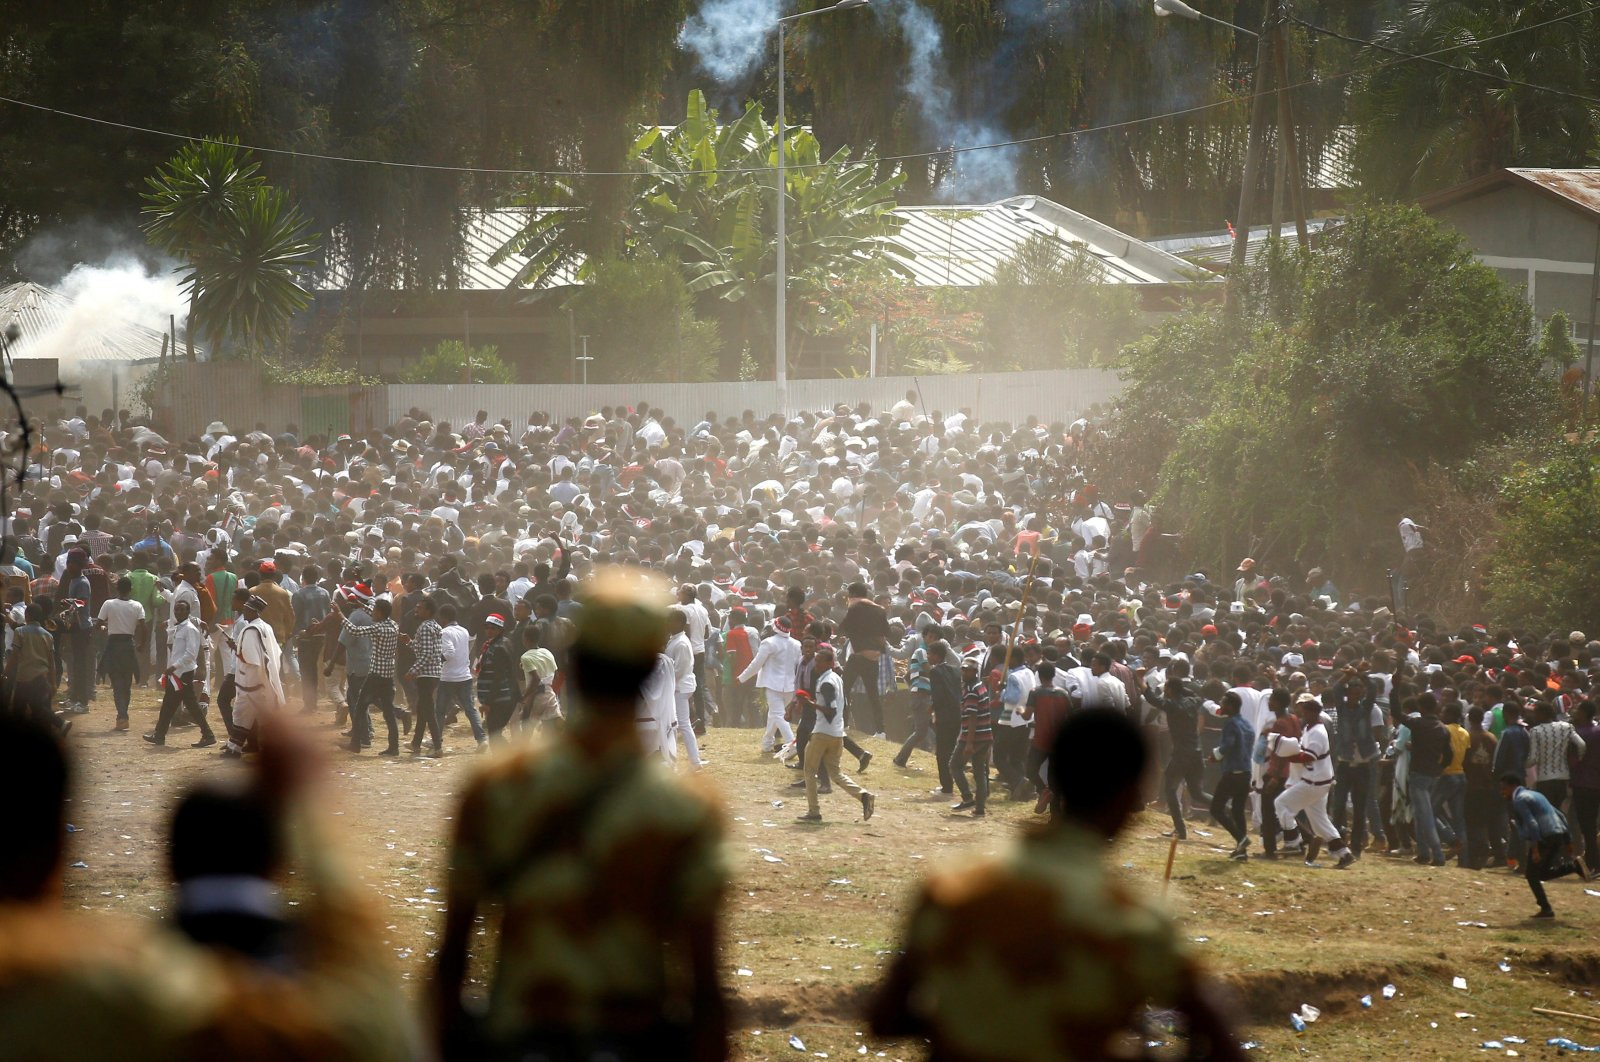 Protestors run from teargas launched by security personnel during the Irecha, the thanksgiving festival of the Oromo people, Bishoftu, Oromia region, Ethiopia, Oct. 2, 2016. (Reuters Photo)